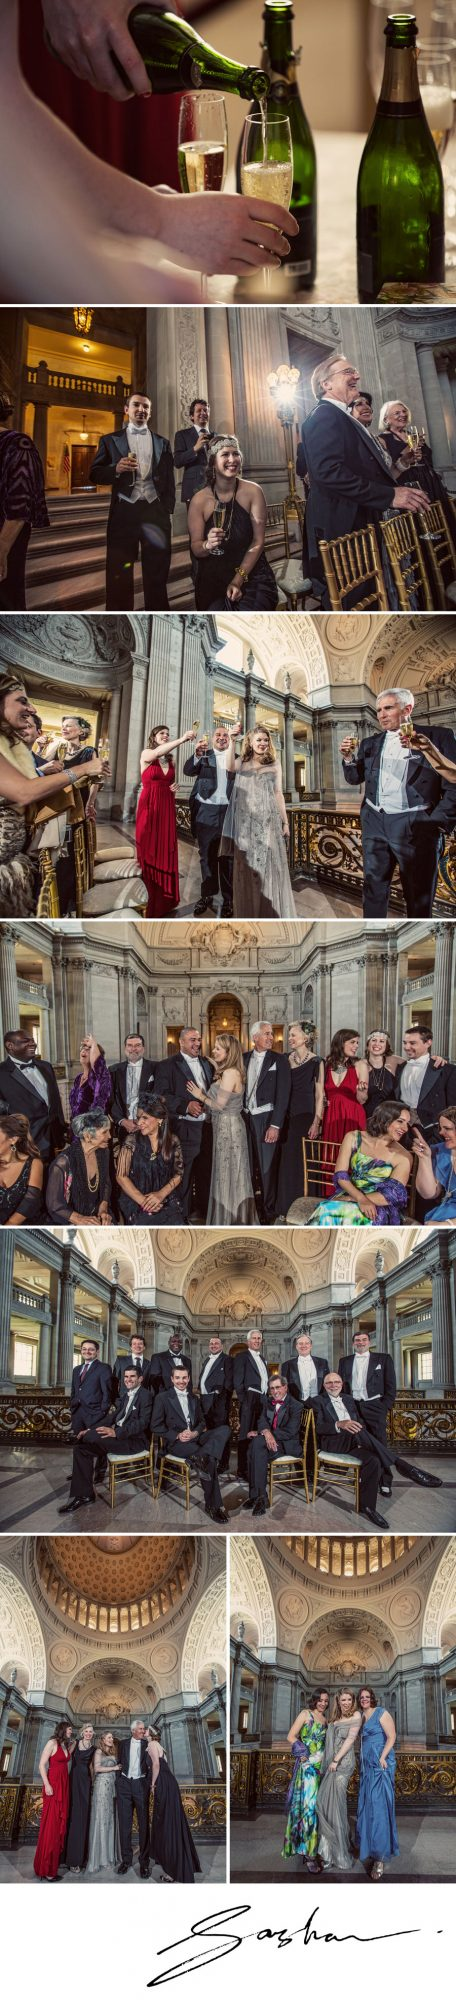 black-tie-san-francisco-city-hall-wedding